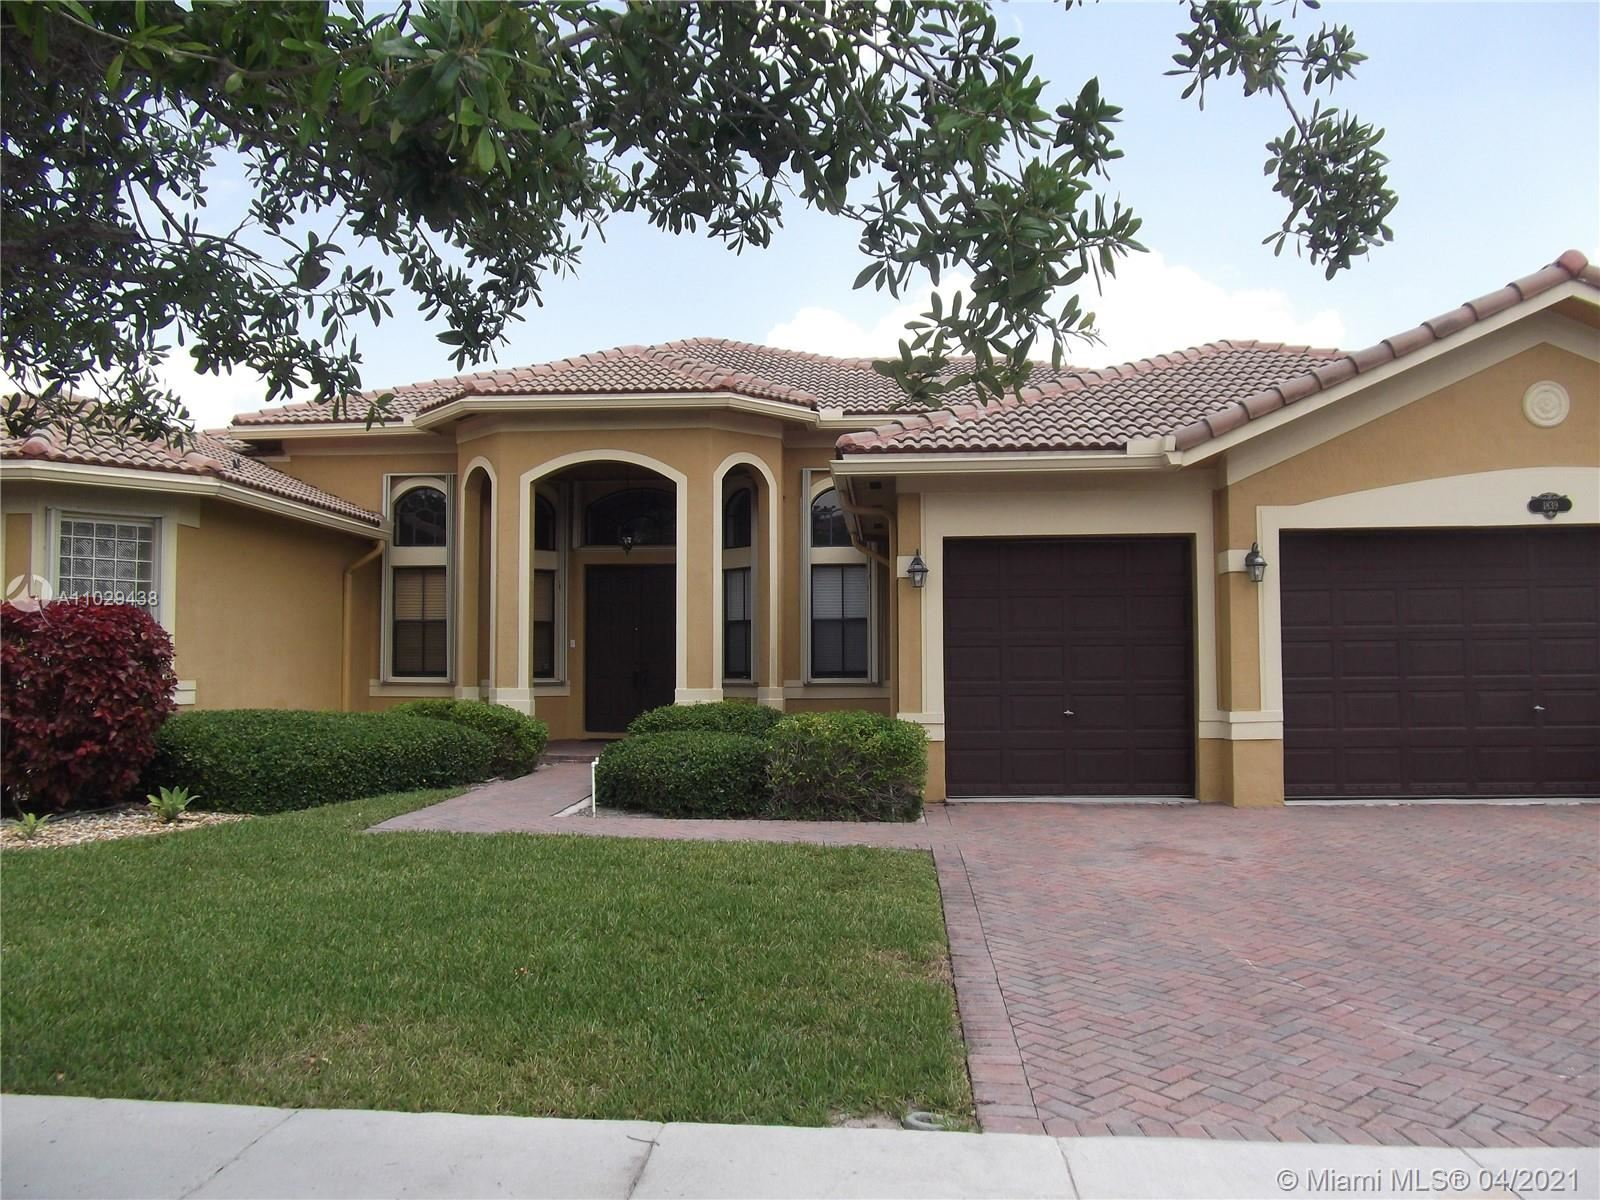 1839 SW 195th Ave, Miramar, FL 33029 - #: A11029438